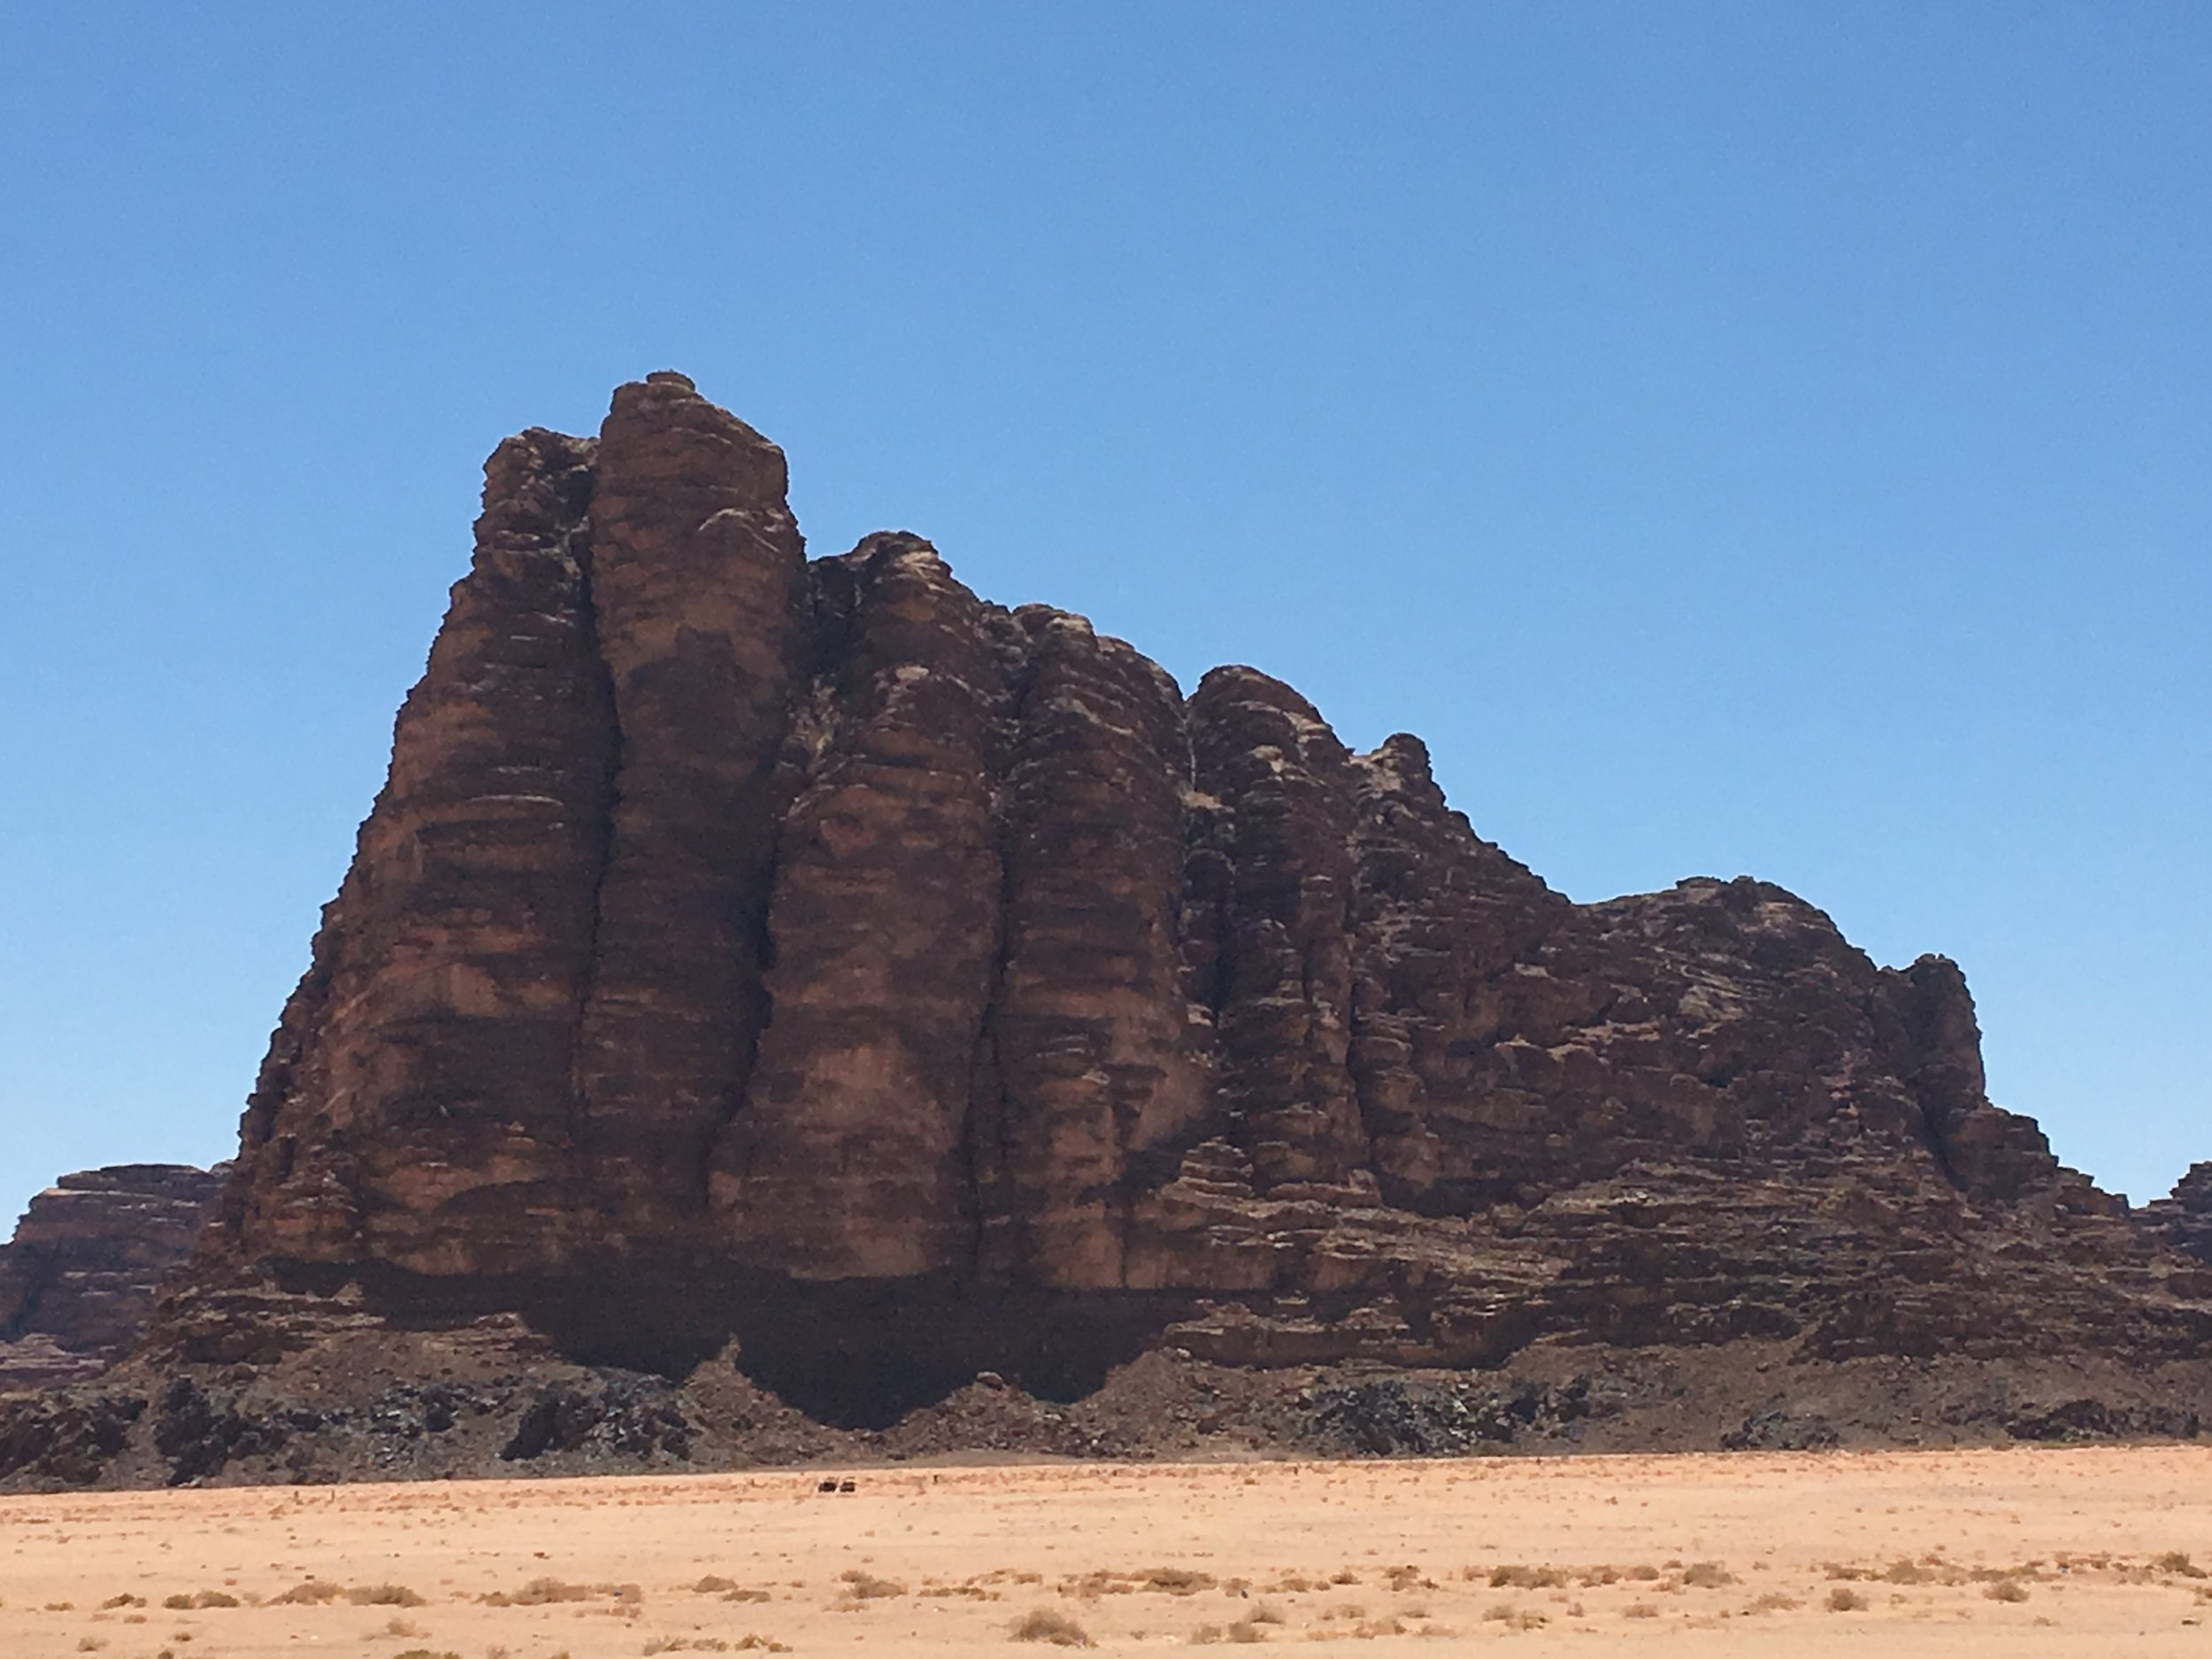 This mountain in the Jordanian dessert was the center of attention in the movie, Lawrence of Arabia